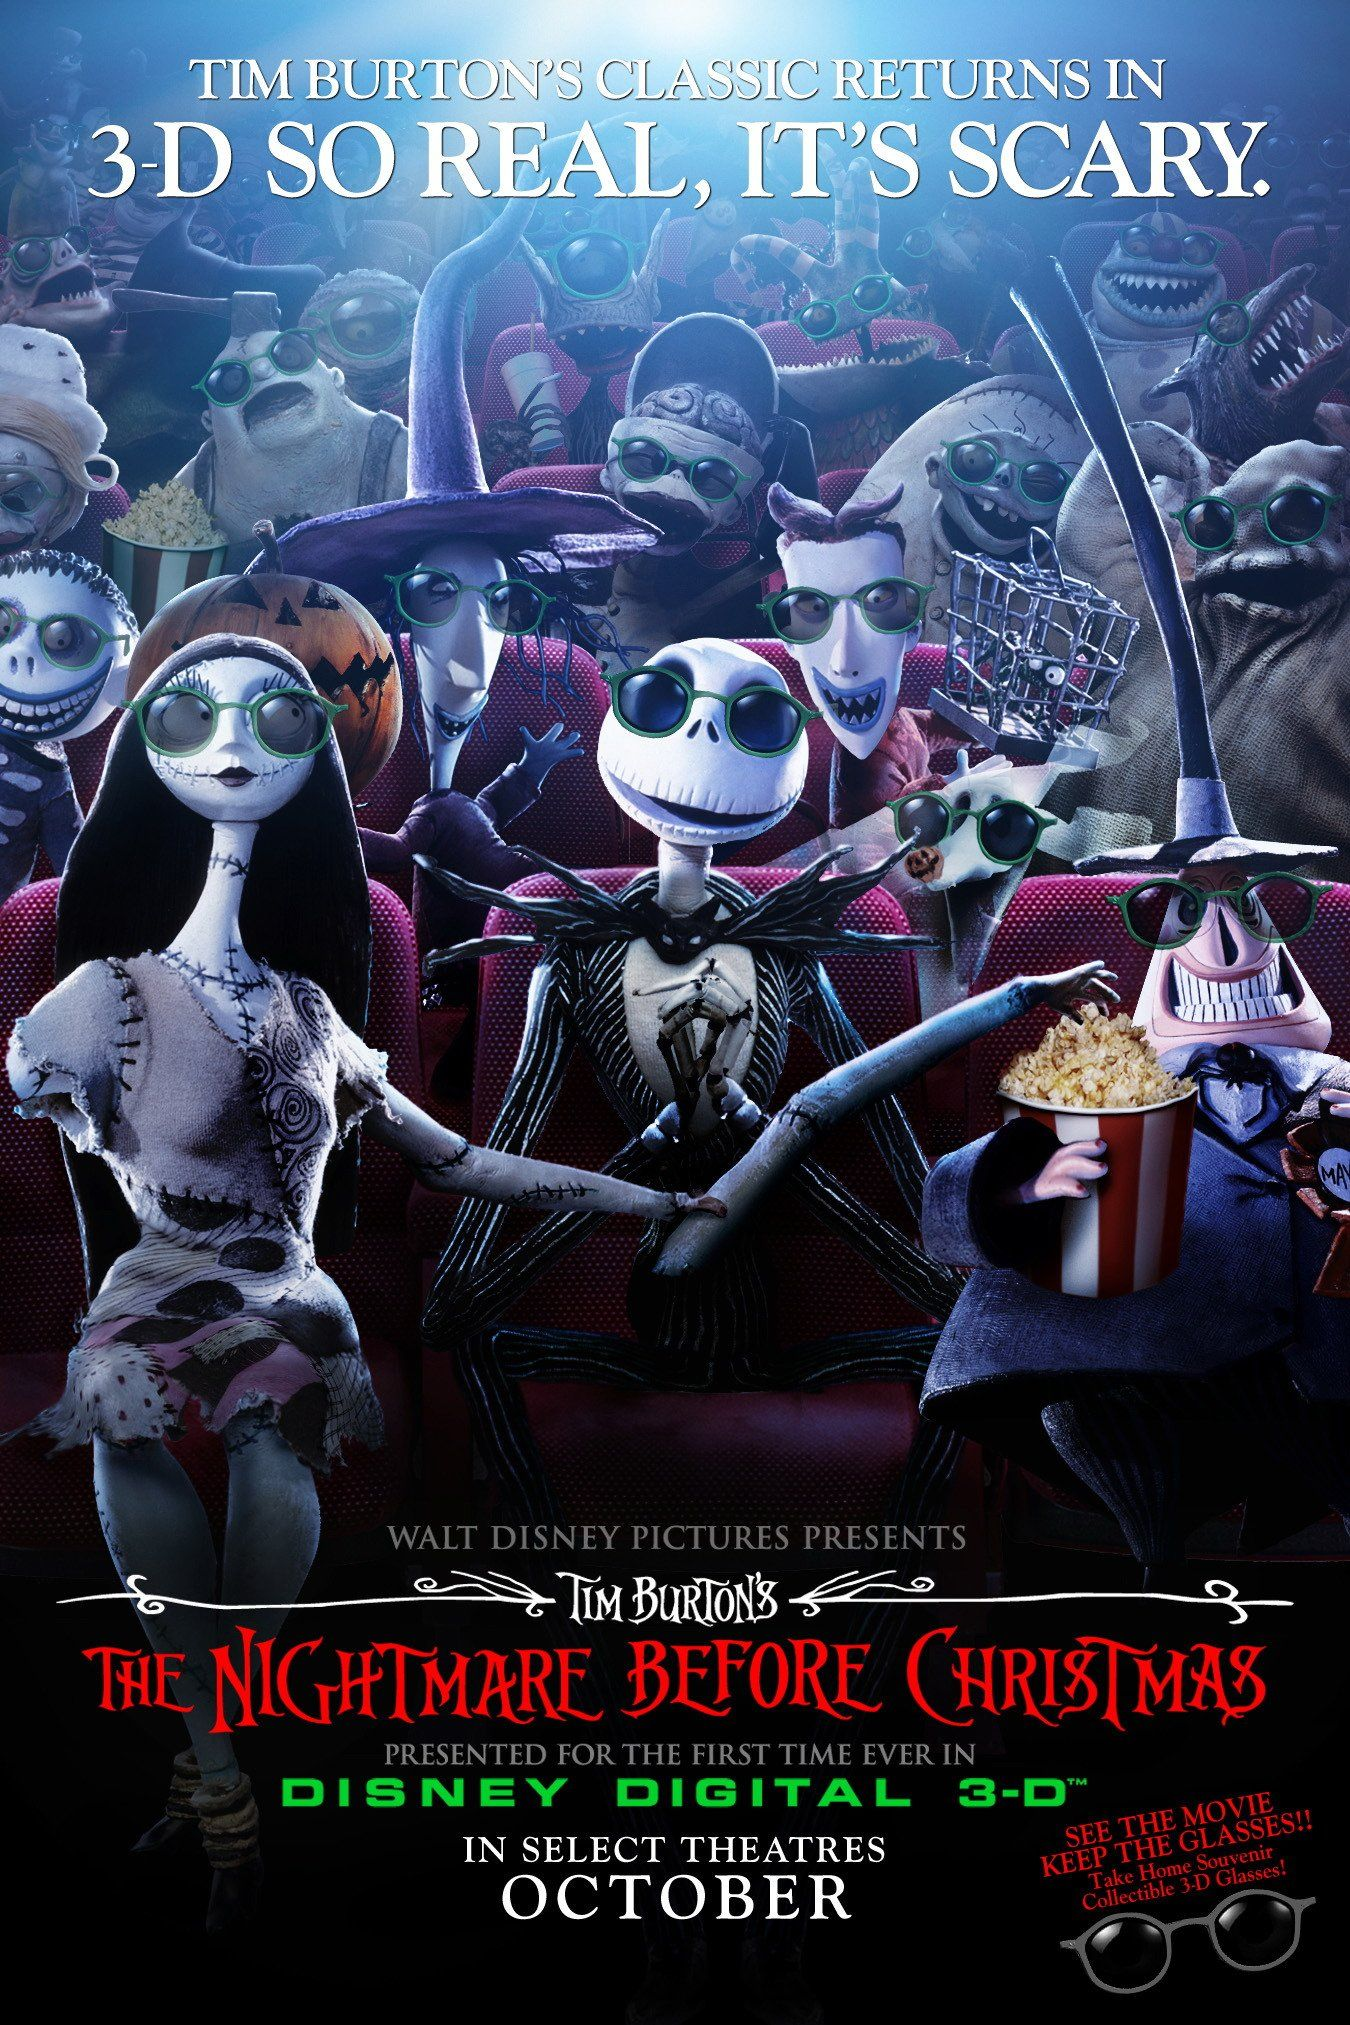 TB071. The Nightmare before Christmas / American Movie Poster 3-D ...